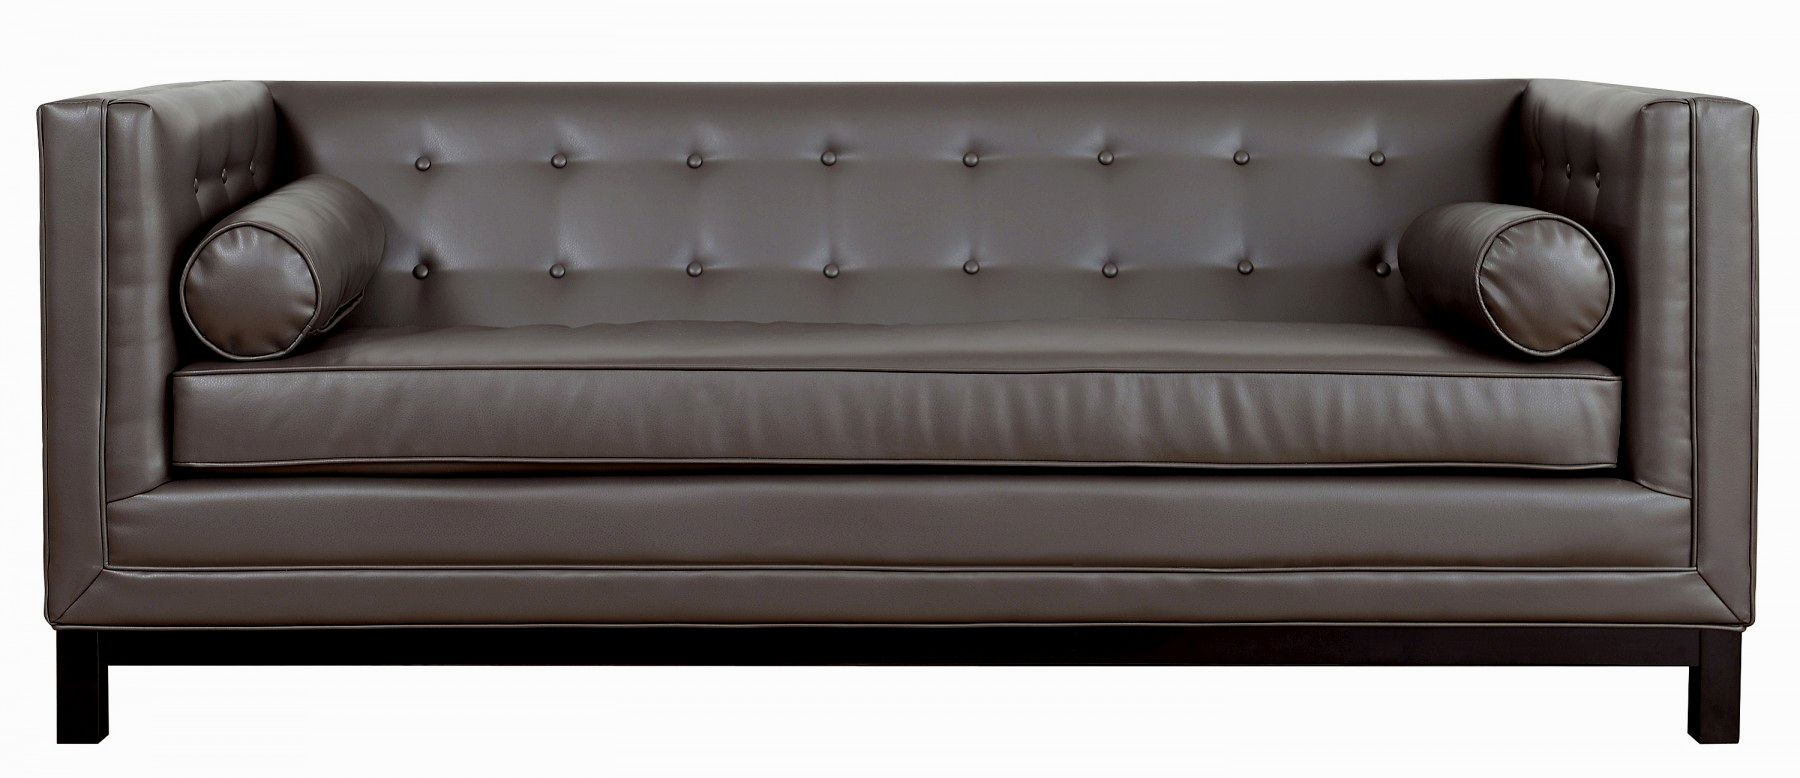 cute sectional sofa bed design-Best Sectional sofa Bed Design